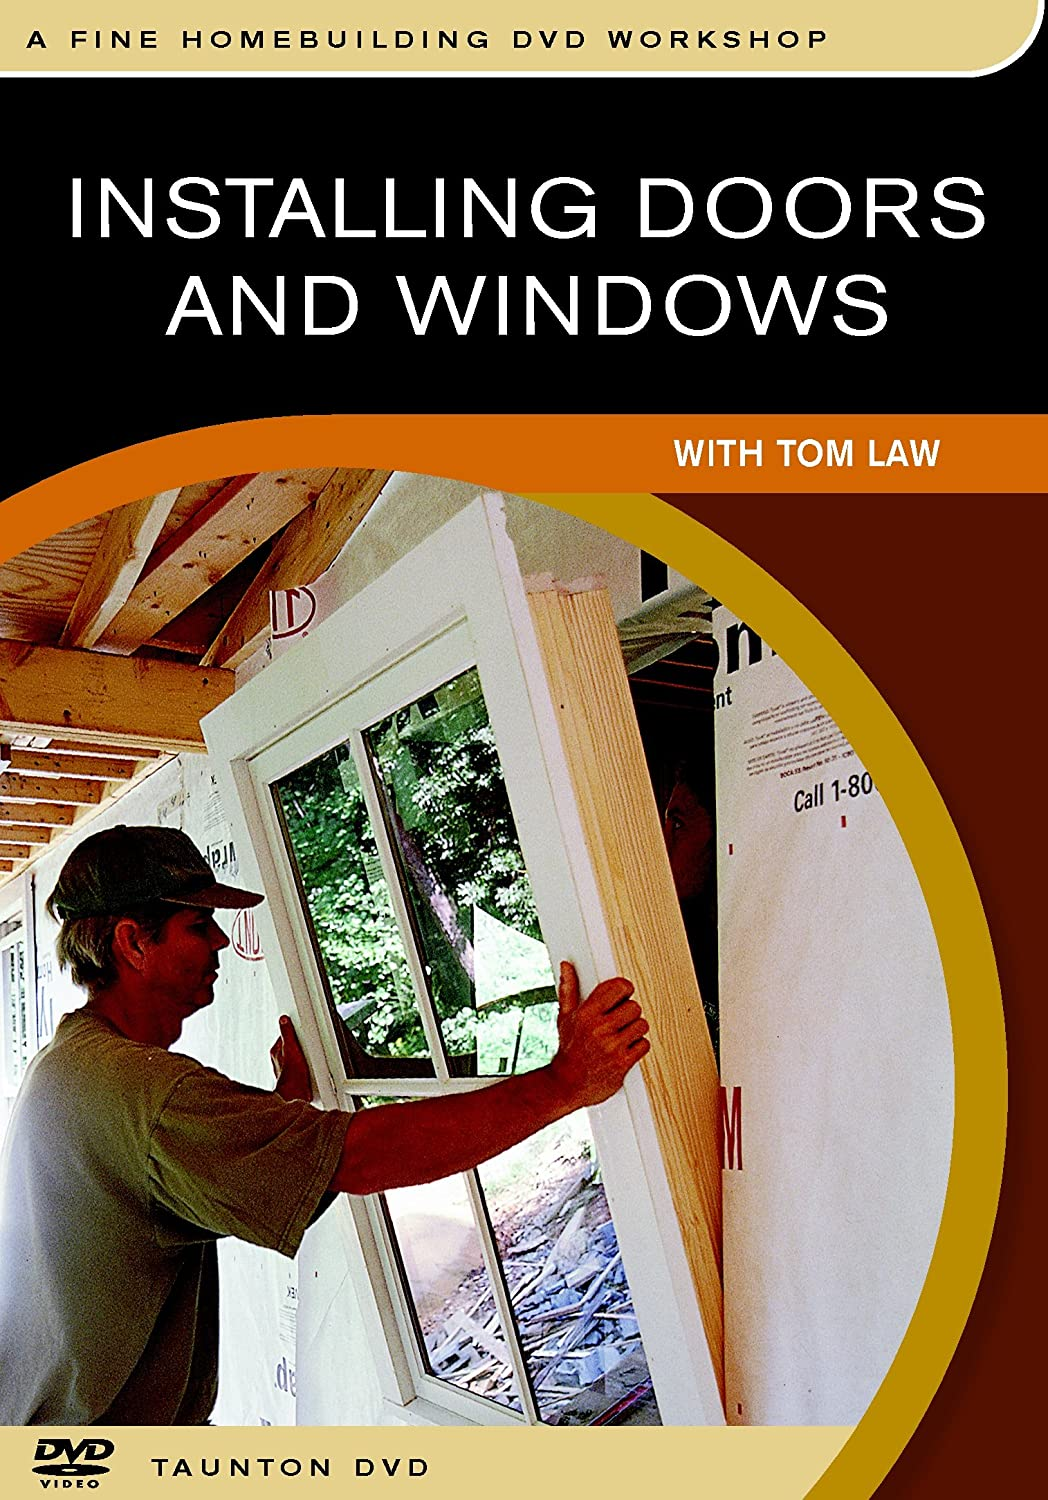 Installing kitchen cabinets and countertops with tom law - Amazon Com Installing Doors And Windows With Tom Law Tom Law Movies Tv